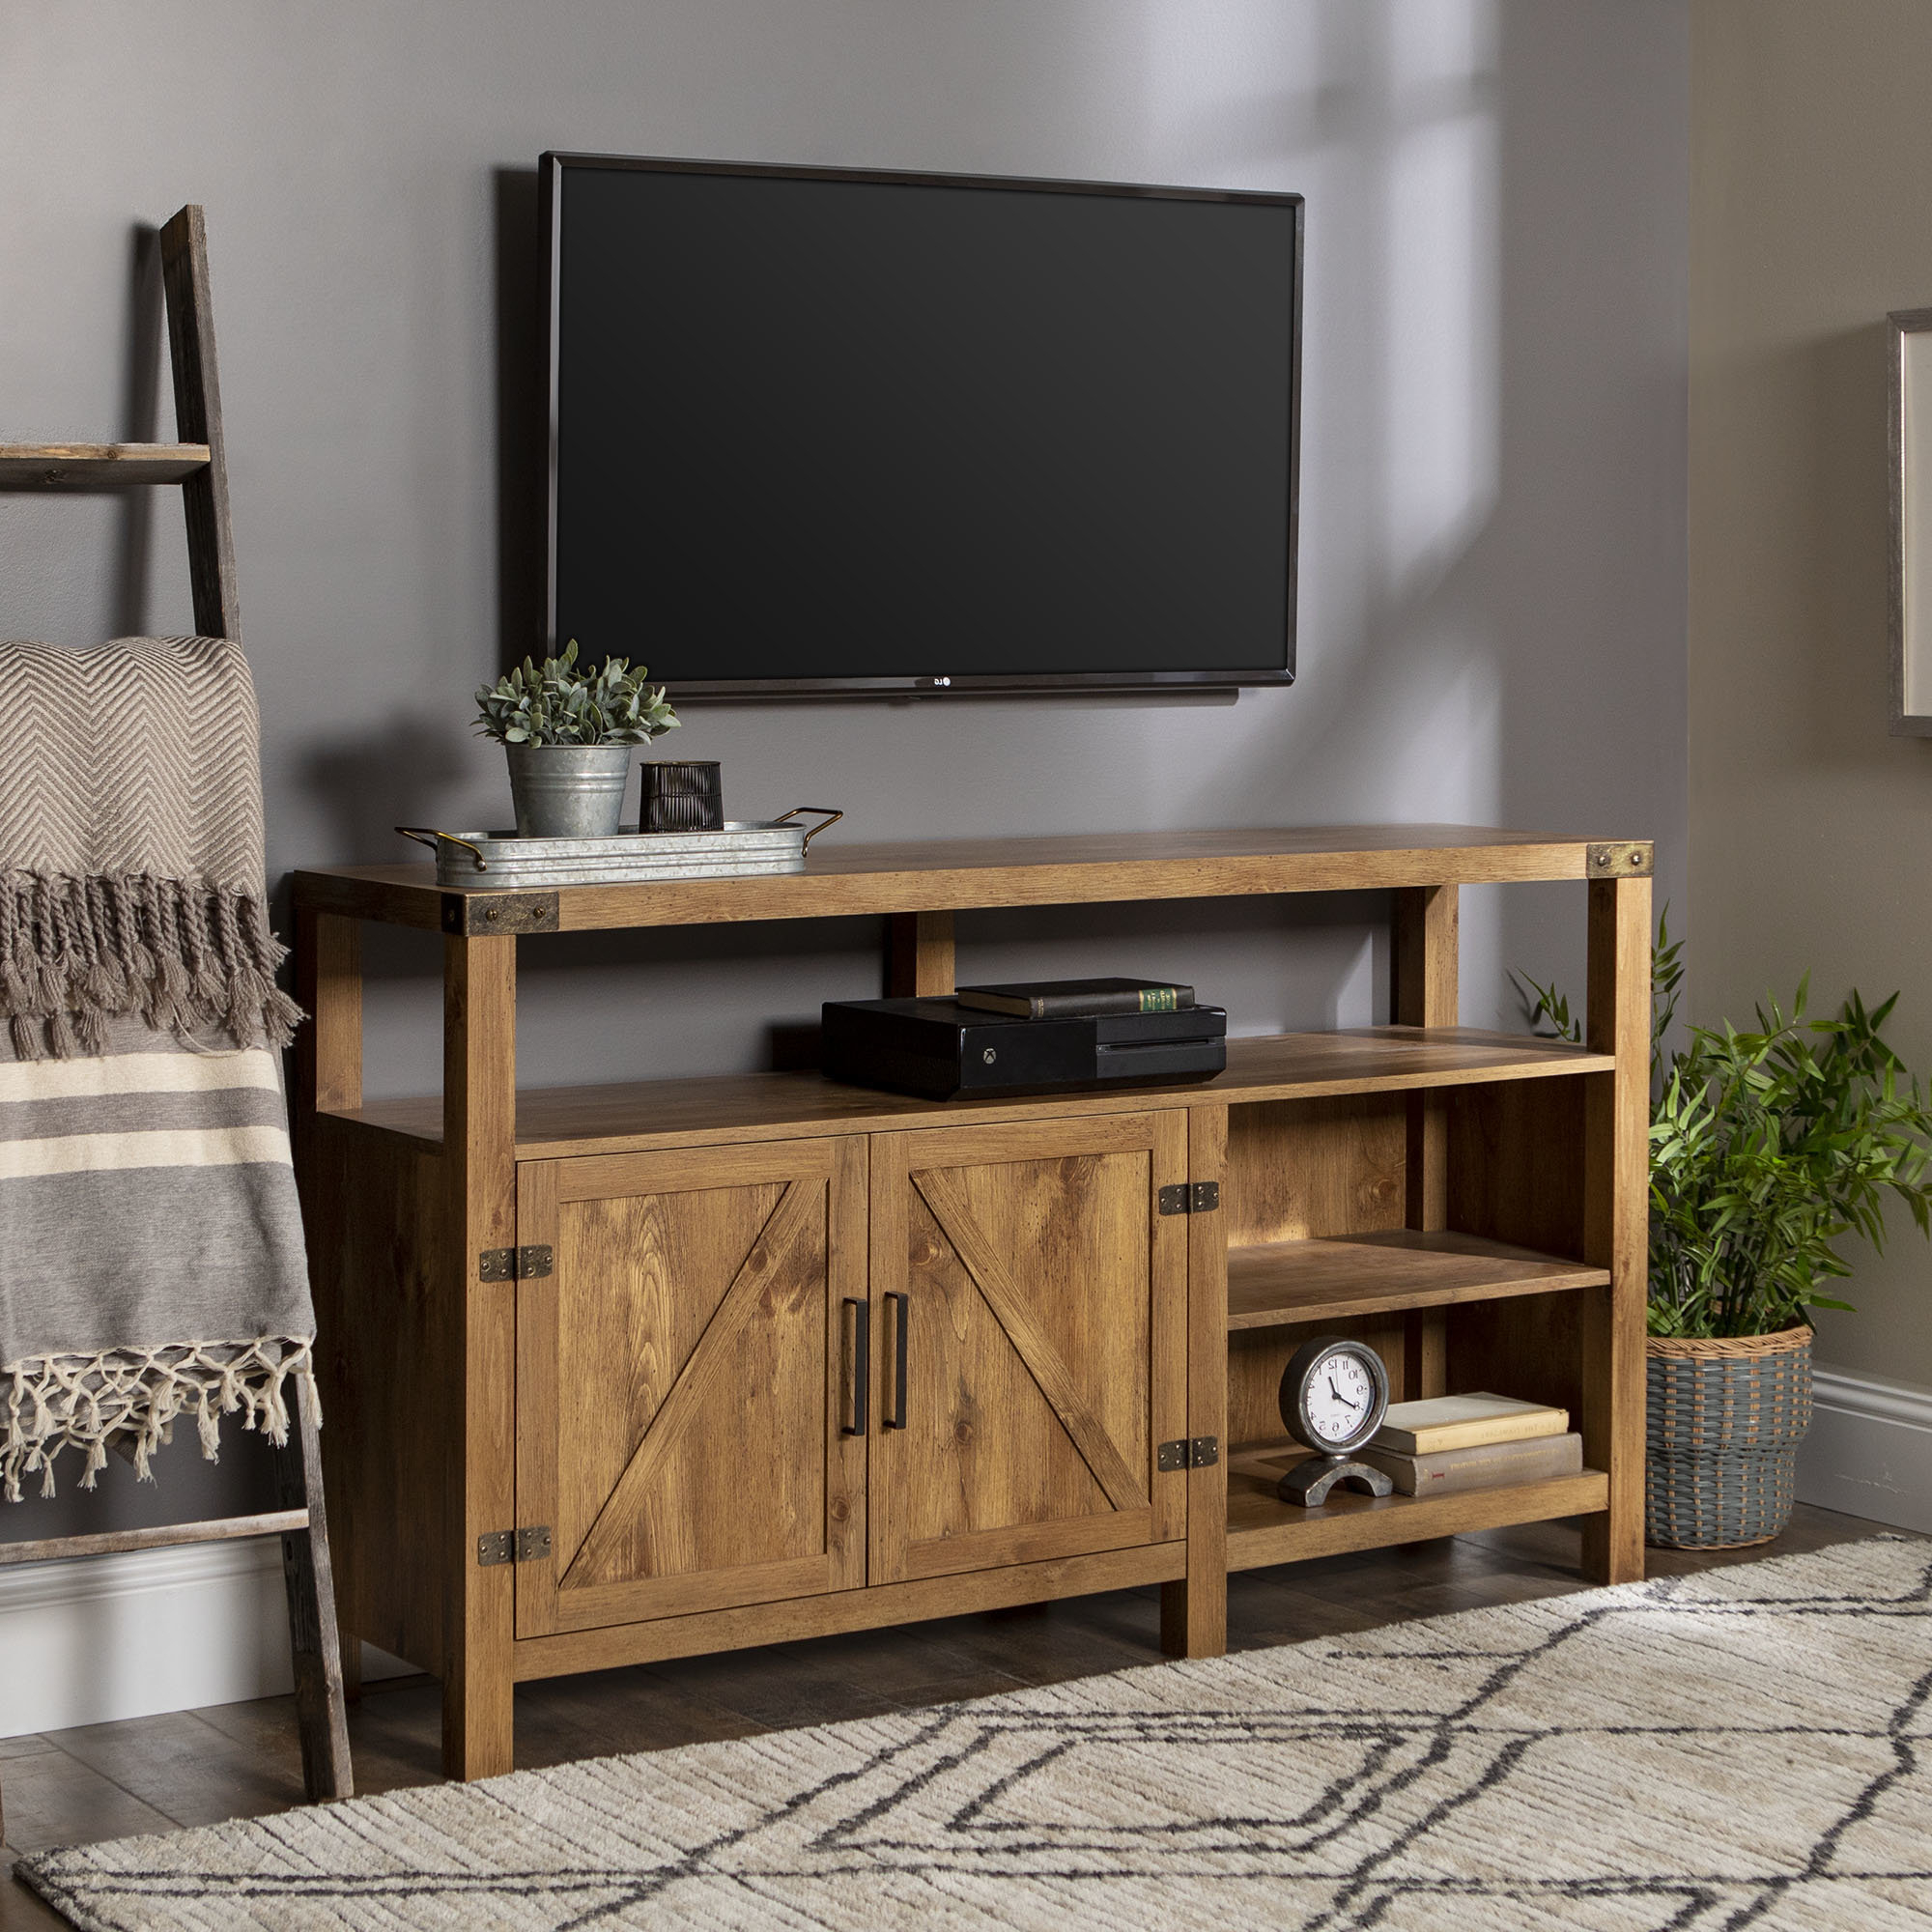 Fashionable Tv Stands & Entertainment Centers You'll Love Intended For Tv Stands With Back Panel (Gallery 3 of 20)